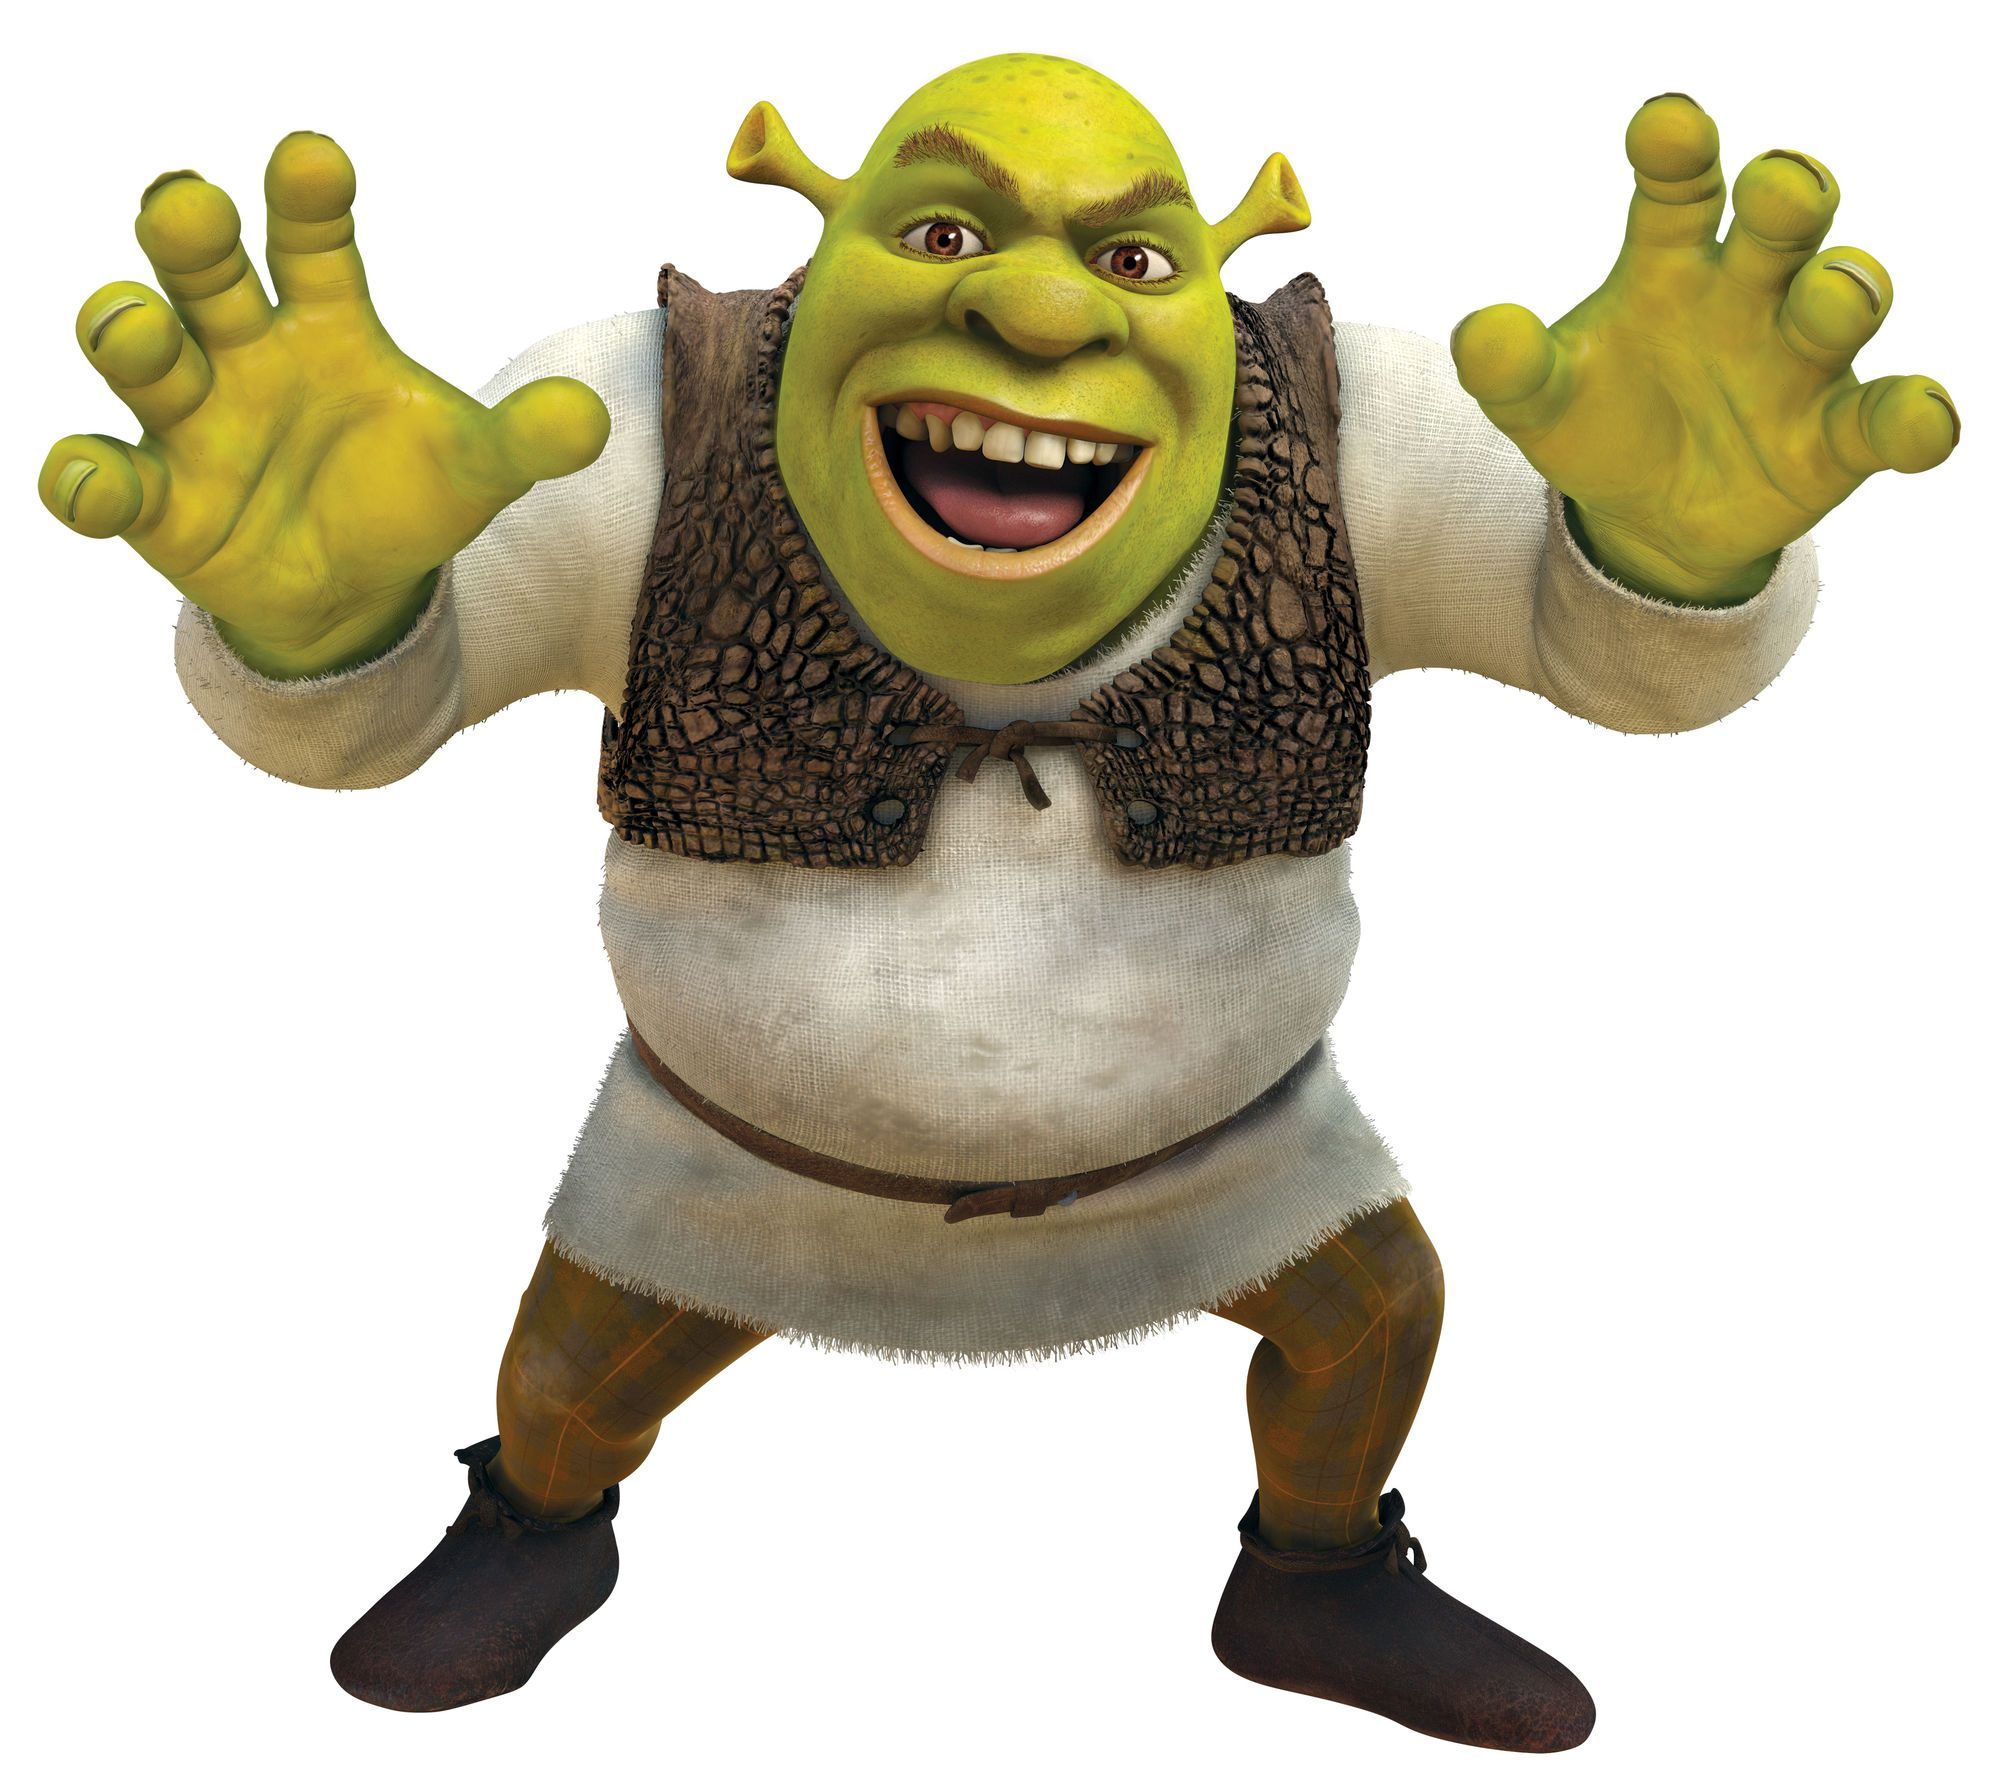 Shrek Character Wikishrek Fandom Powered By Wikia Shrek Character Shrek Cartoon